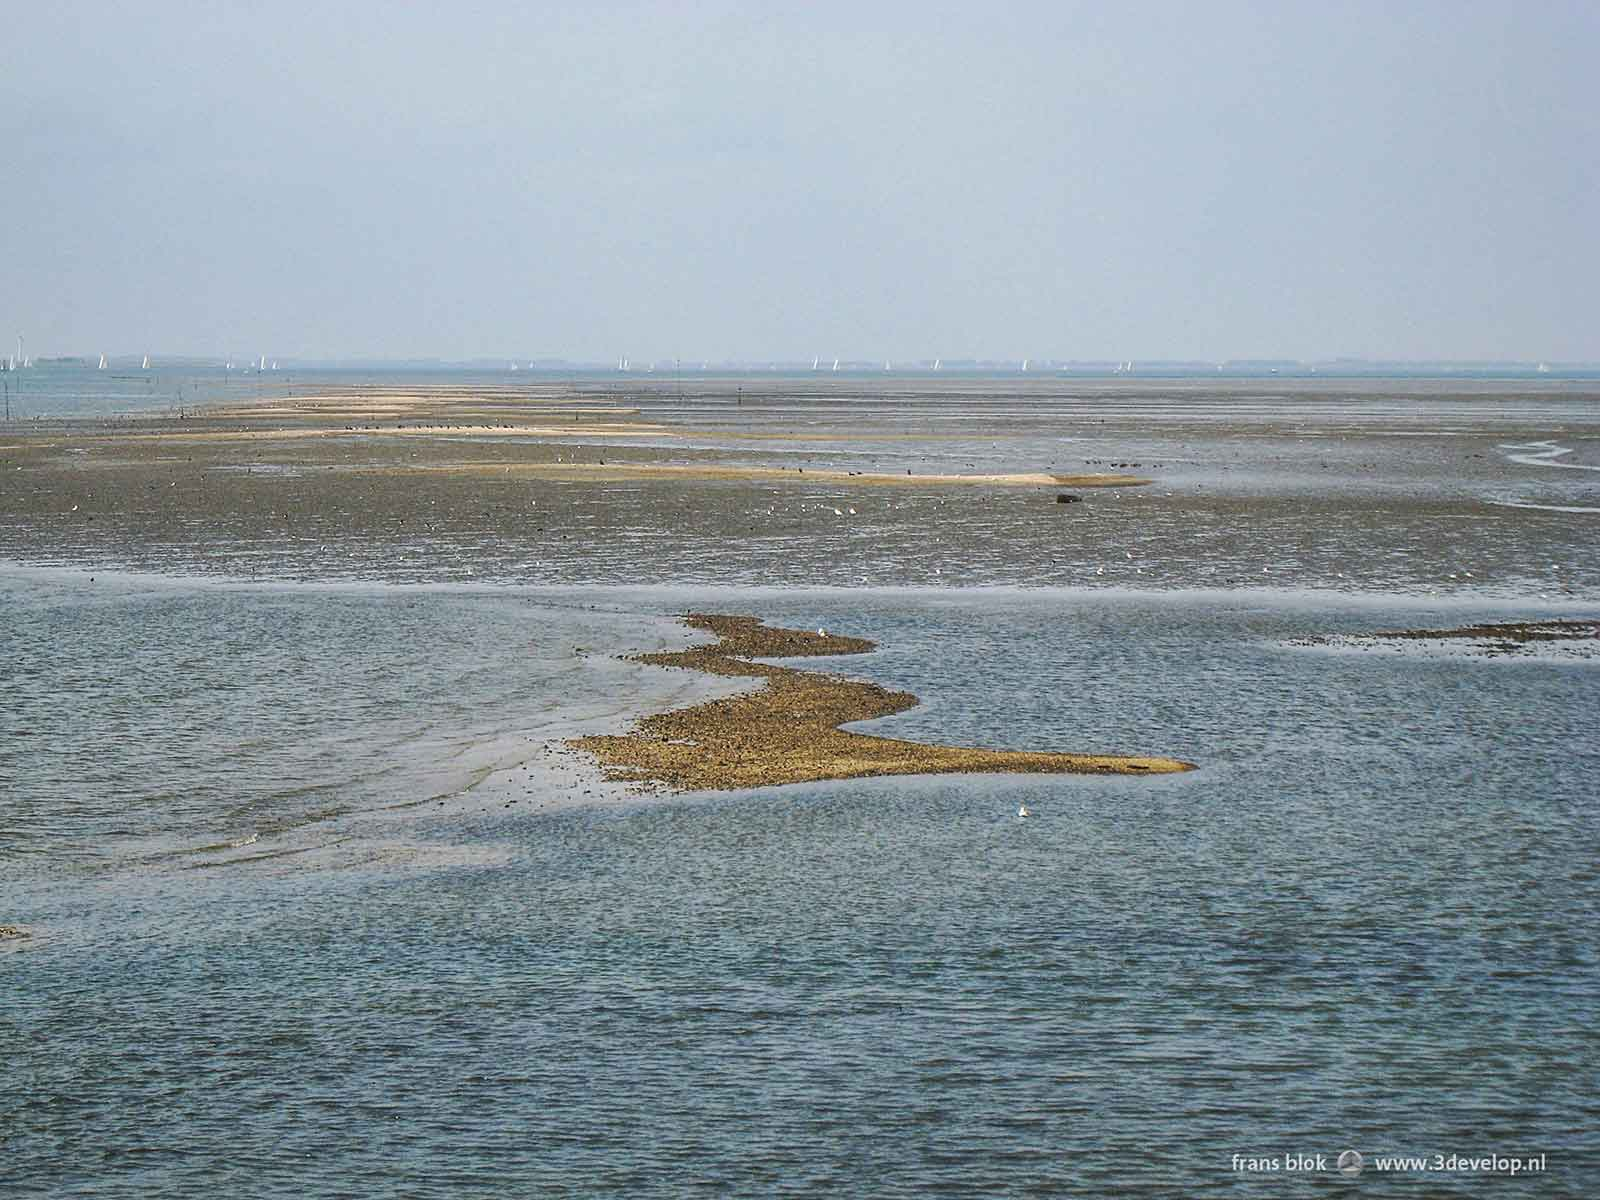 Irregularly shaped sandbars on the Eastern Scheldt, as seen from the dike of the island of Schouwen-Duiveland between Zijpe and Zierikzee